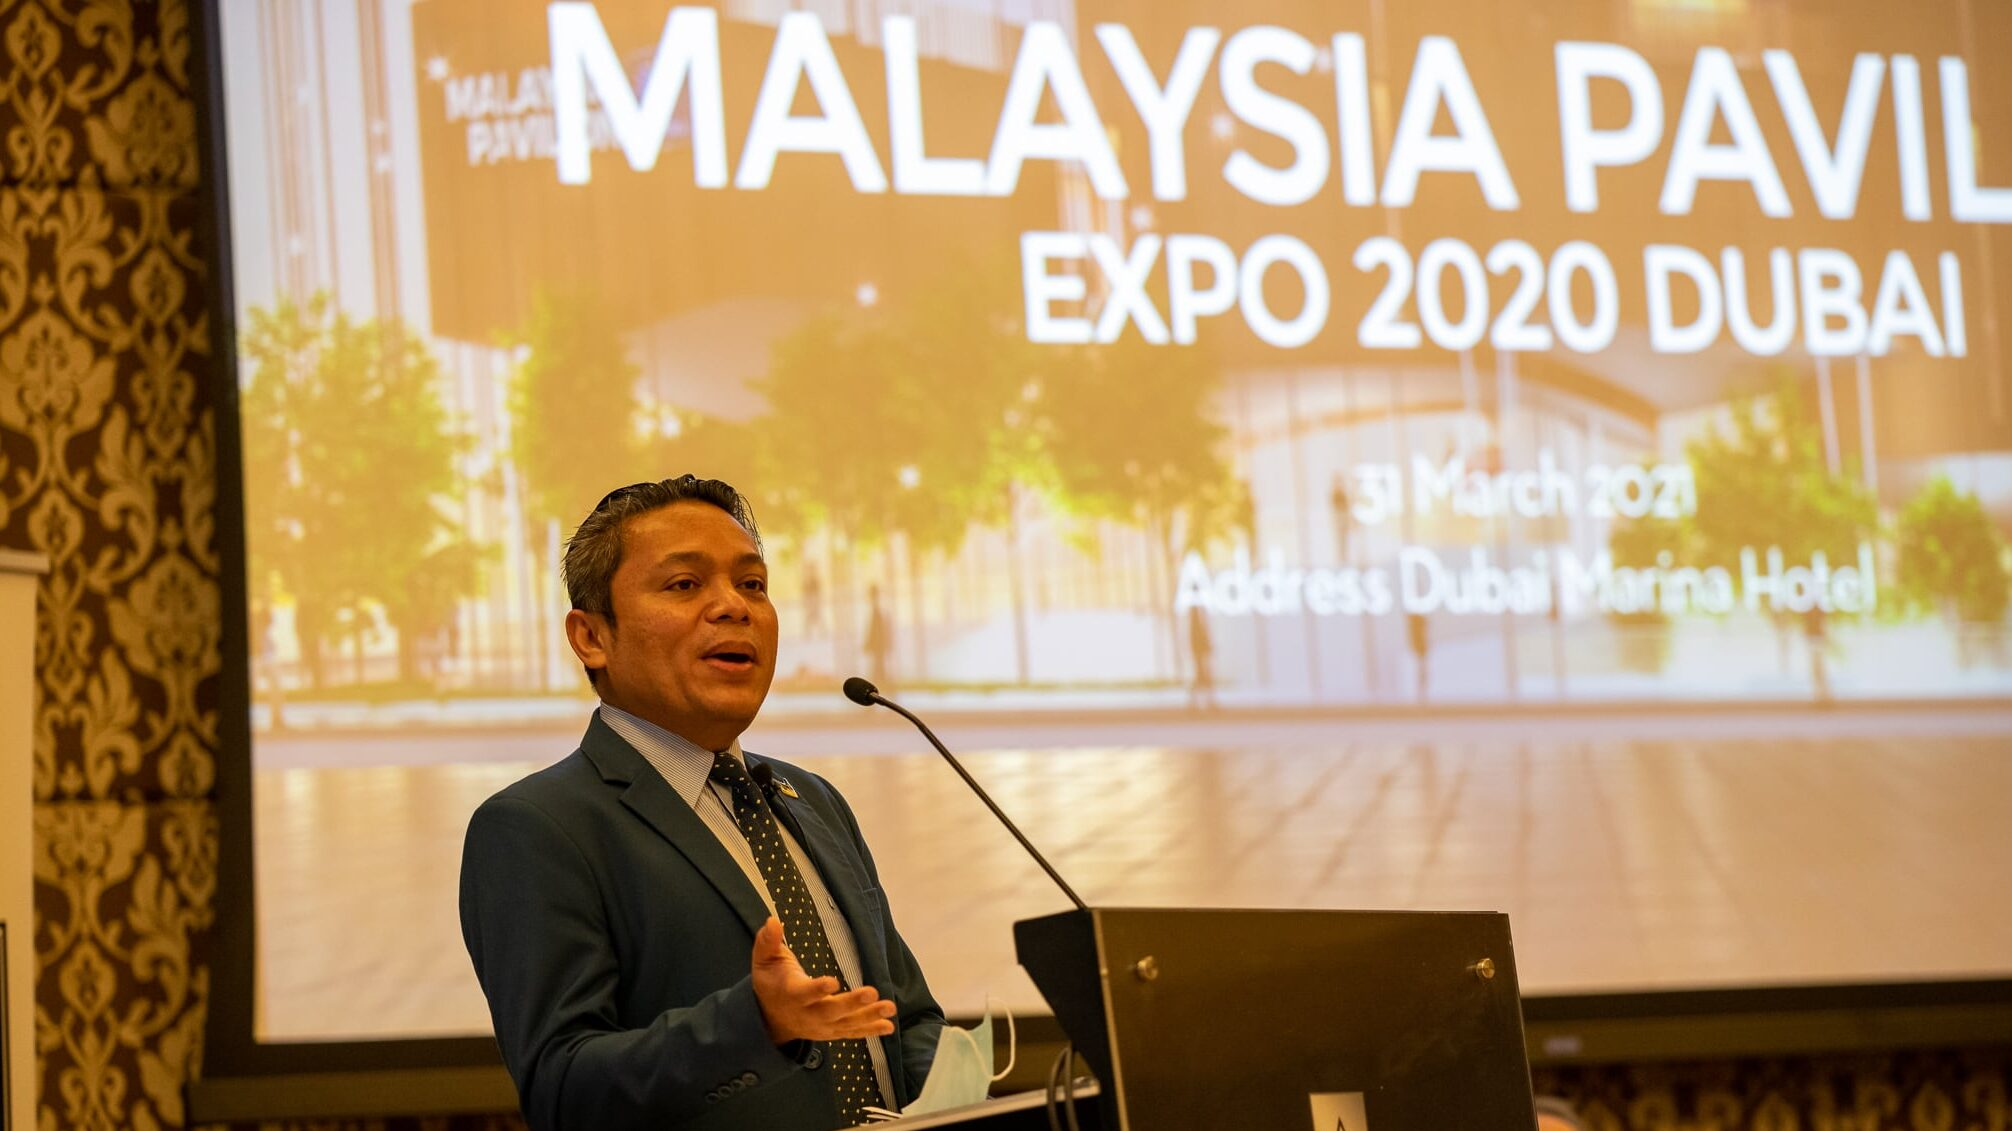 The Ambassador of Malaysia talks about trade and how Expo 2020 would be revolutionary